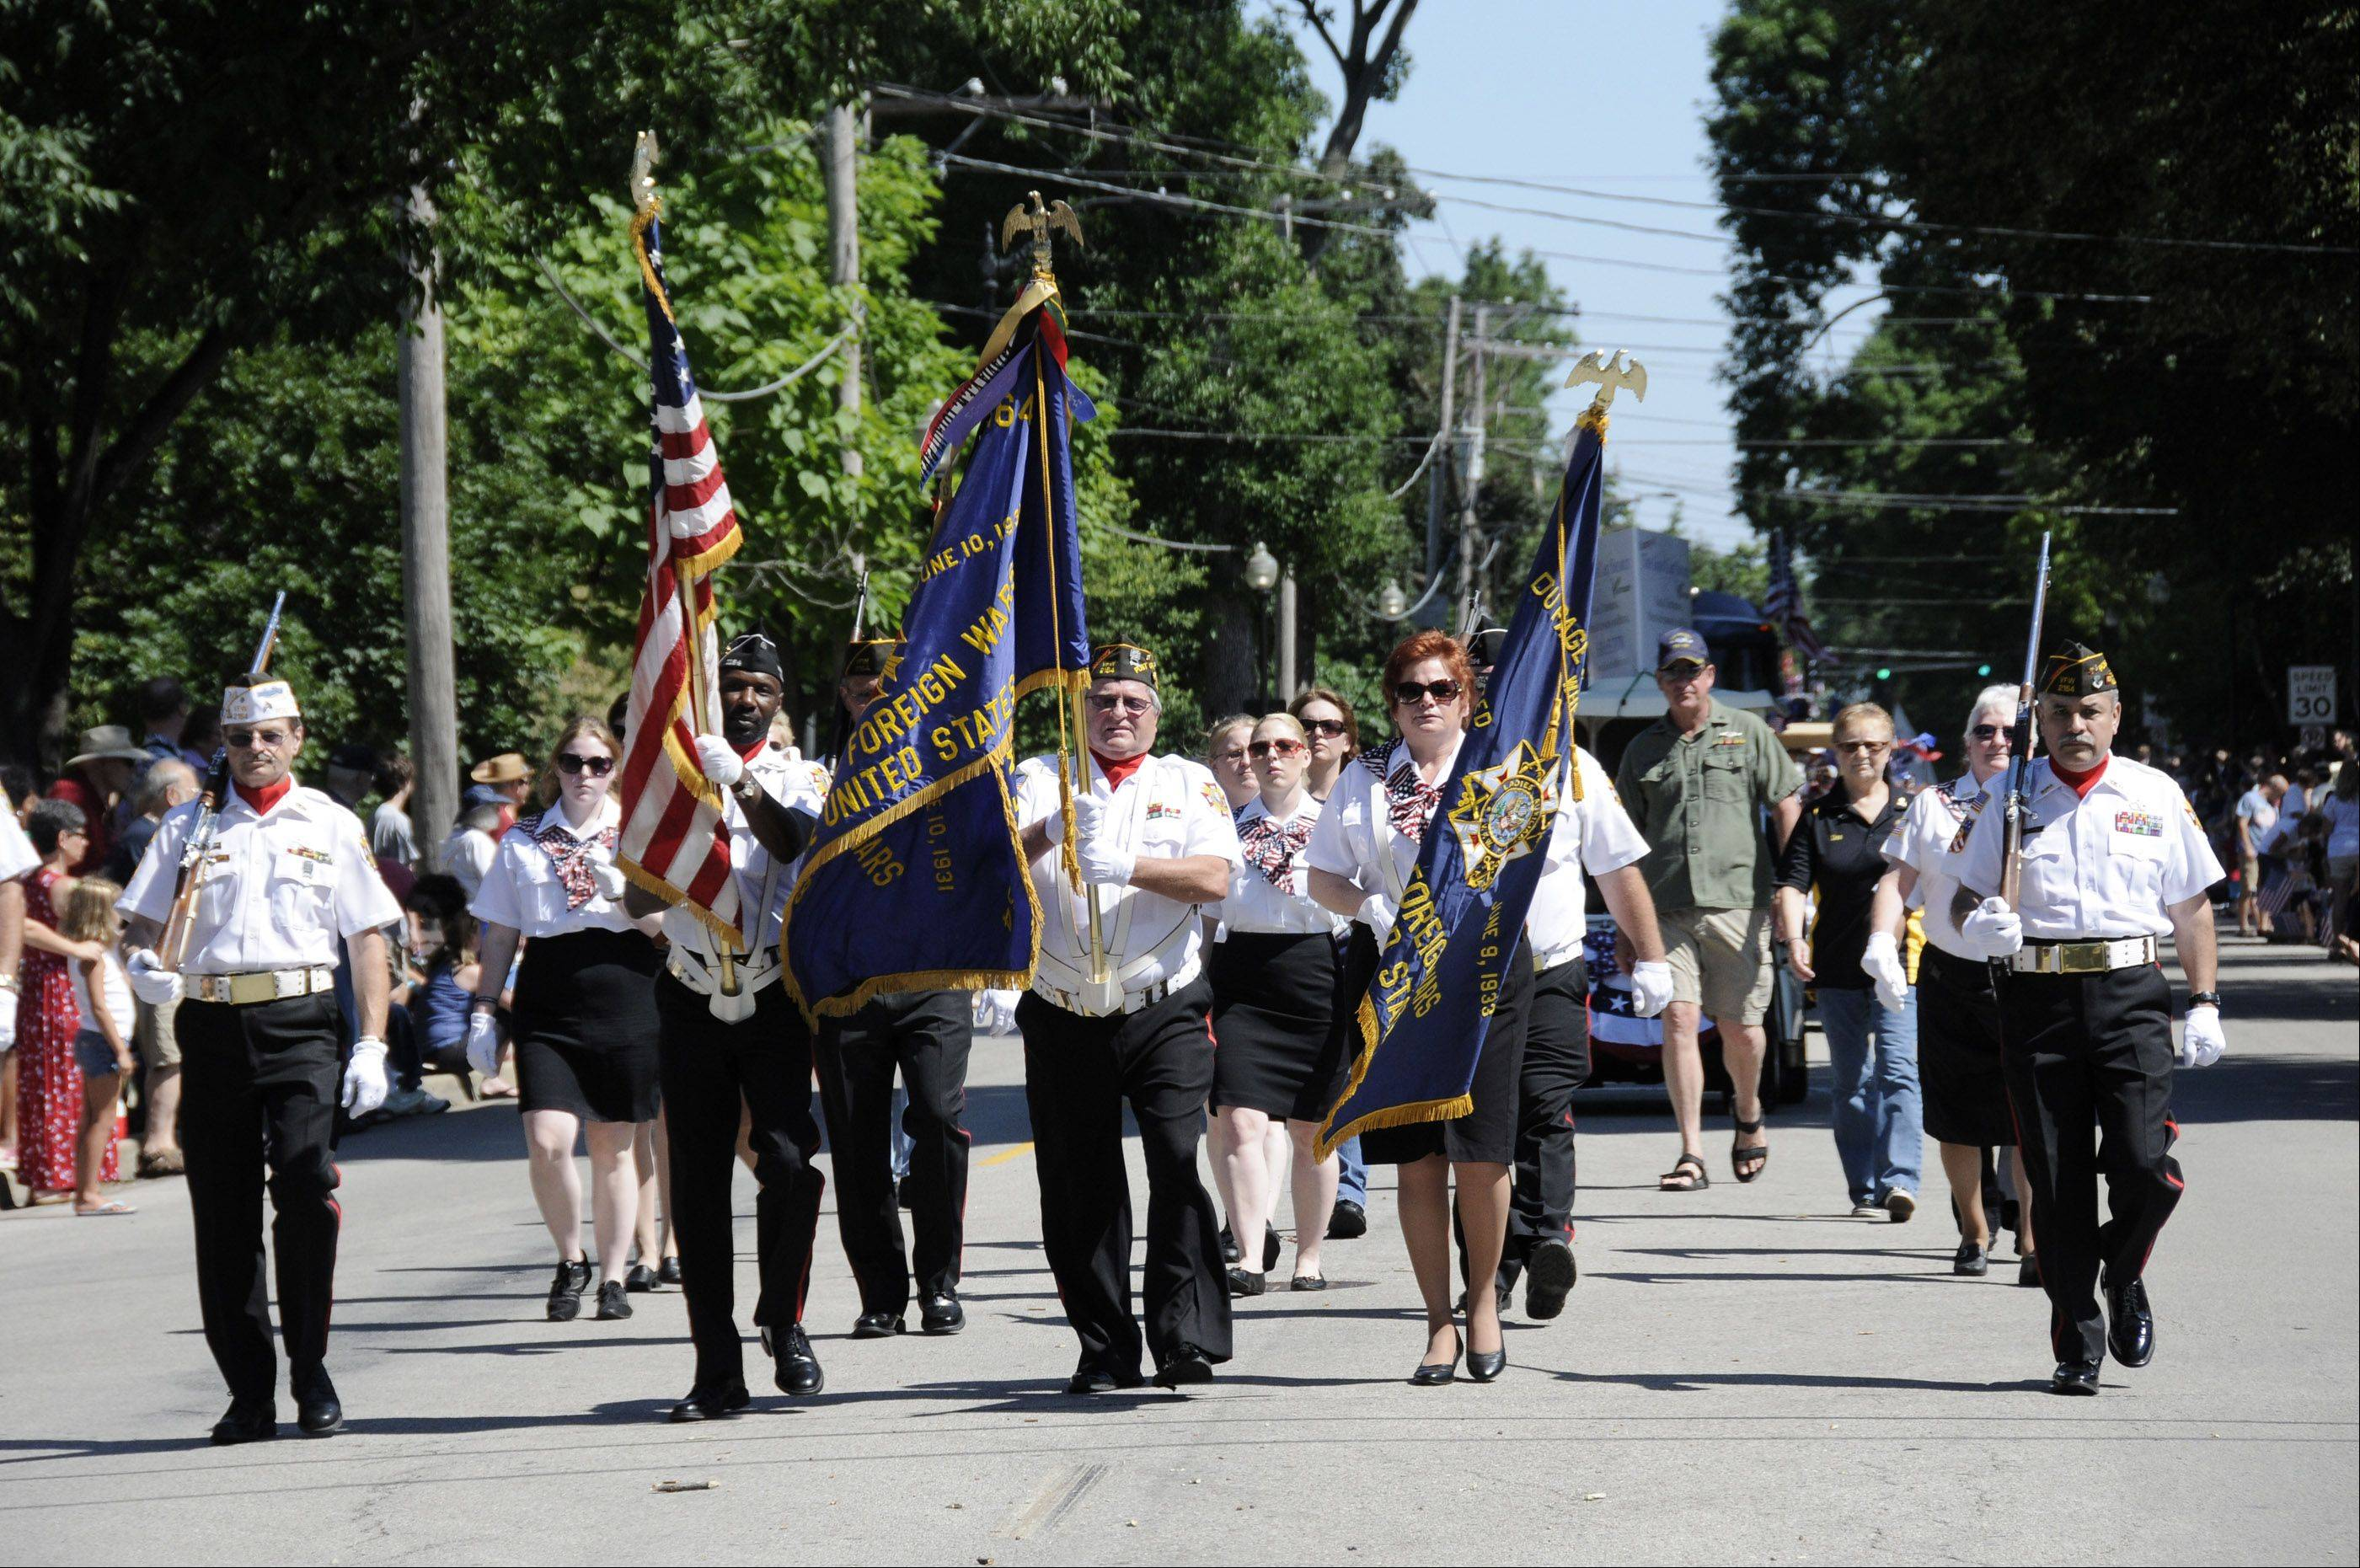 Wheaton's VFW Post 2164 members march down Main Street in Wheaton's Independence Day parade.